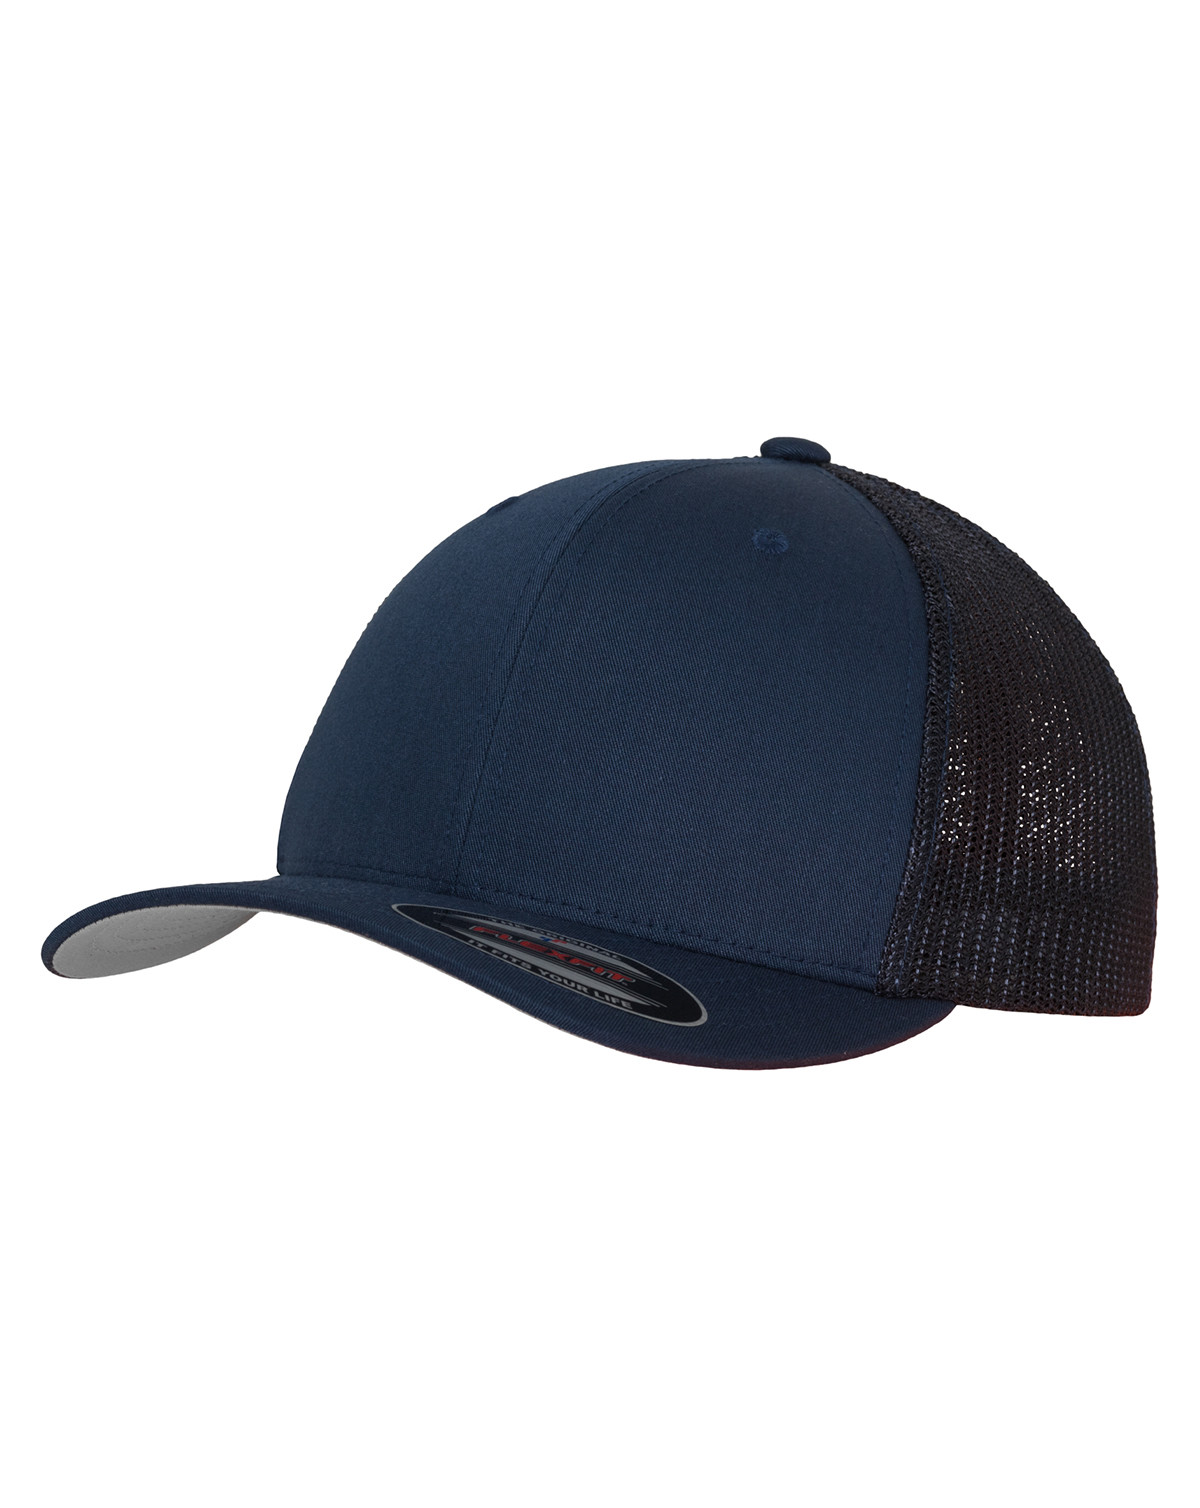 Image of   Flexfit Mesh Trucker Cap (Navy, L/XL)